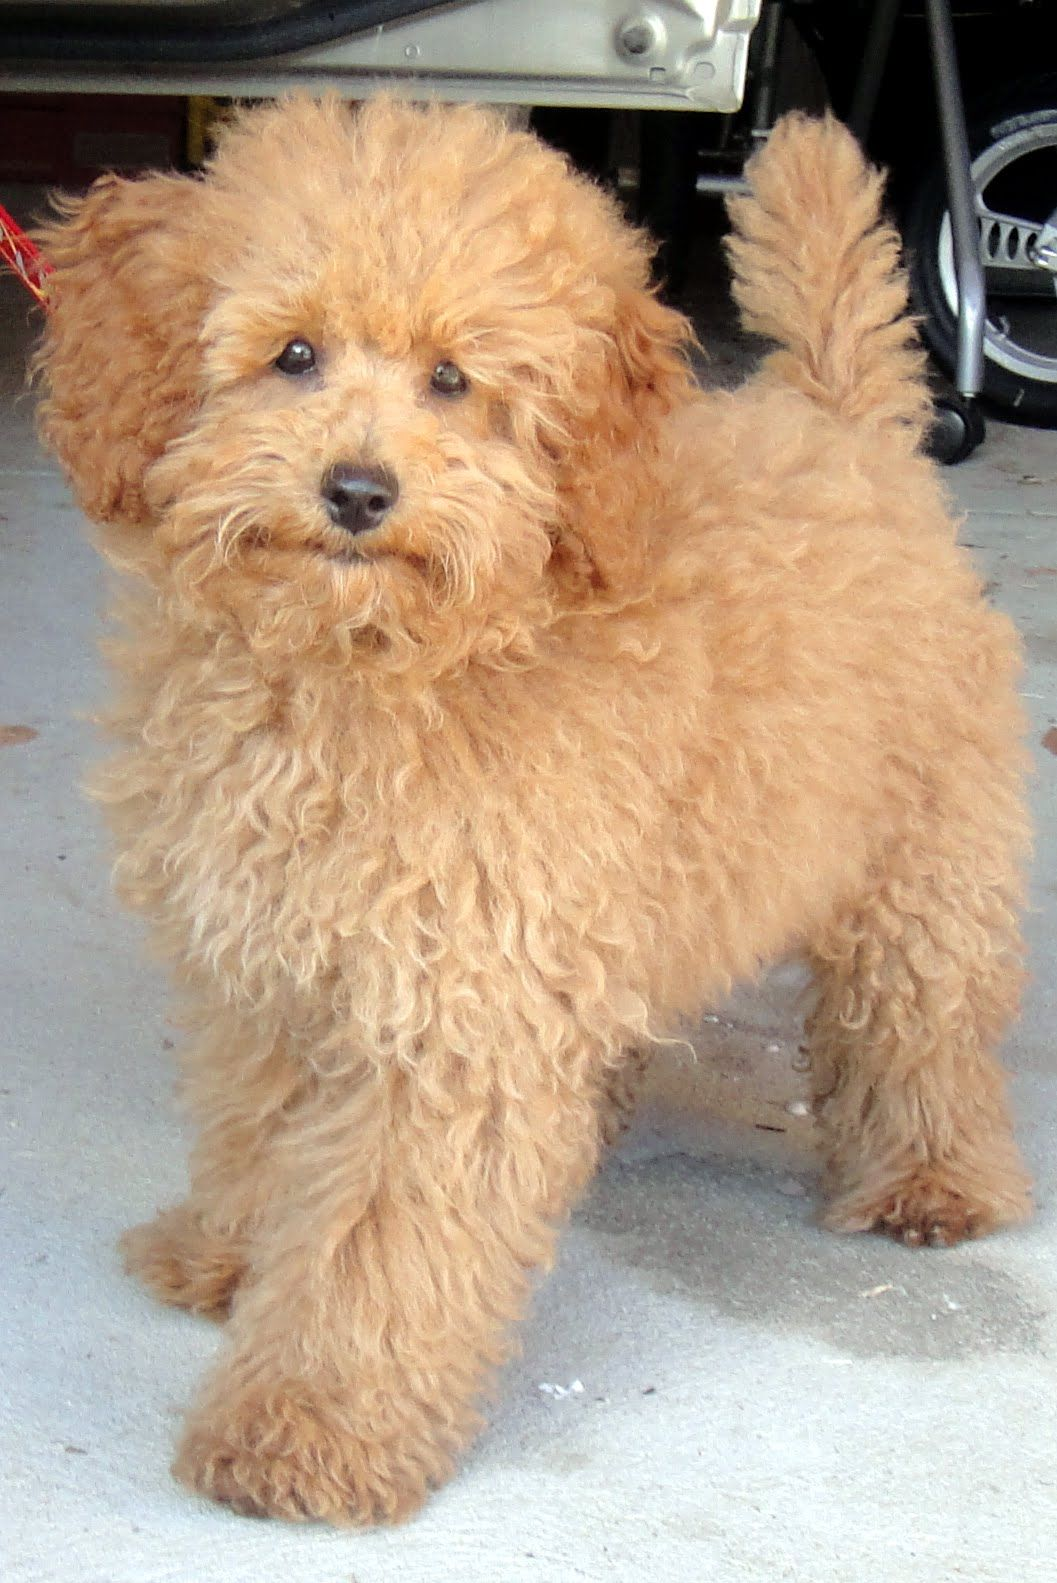 Lifesacommute The Many Hairstyle Of Poodles Toy Poodle Haircut Poodle Hair Toy Poodle